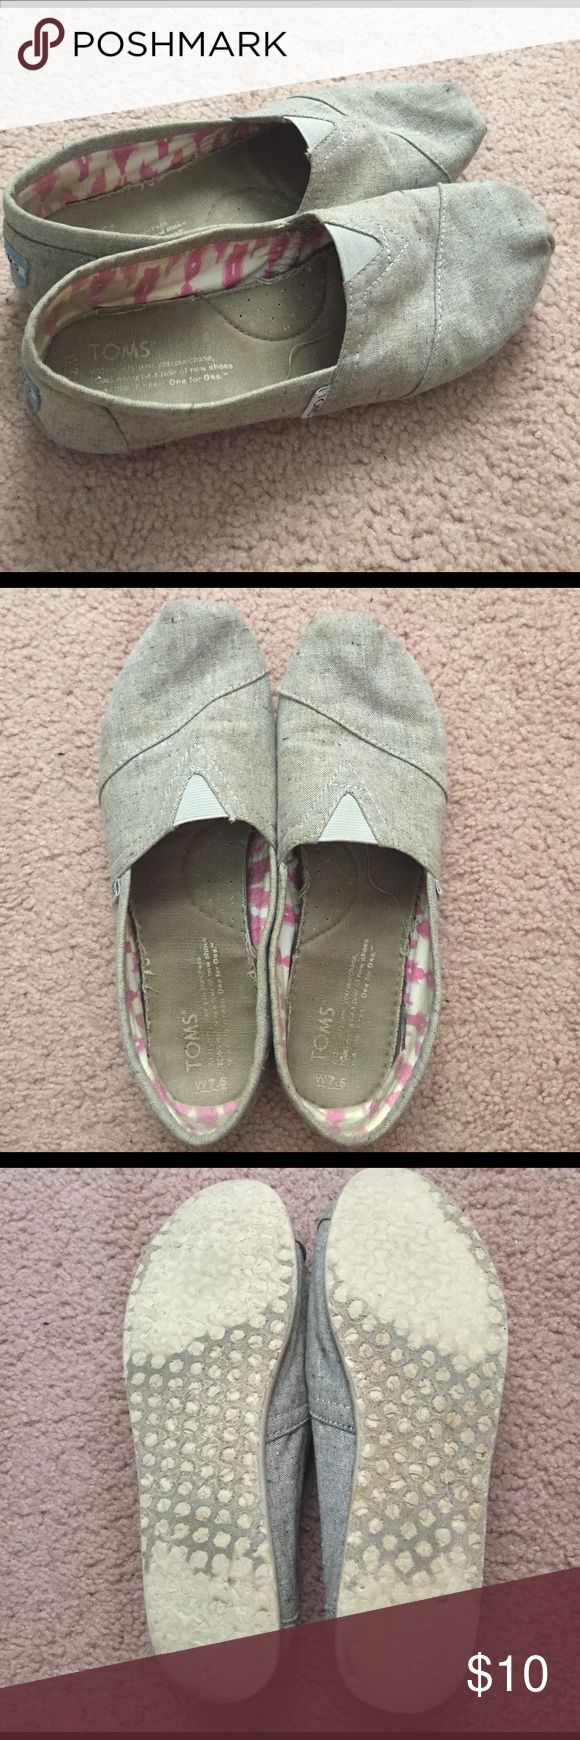 Speckled gray Toms They are worn and dirty but still in really great shape! TOMS Shoes